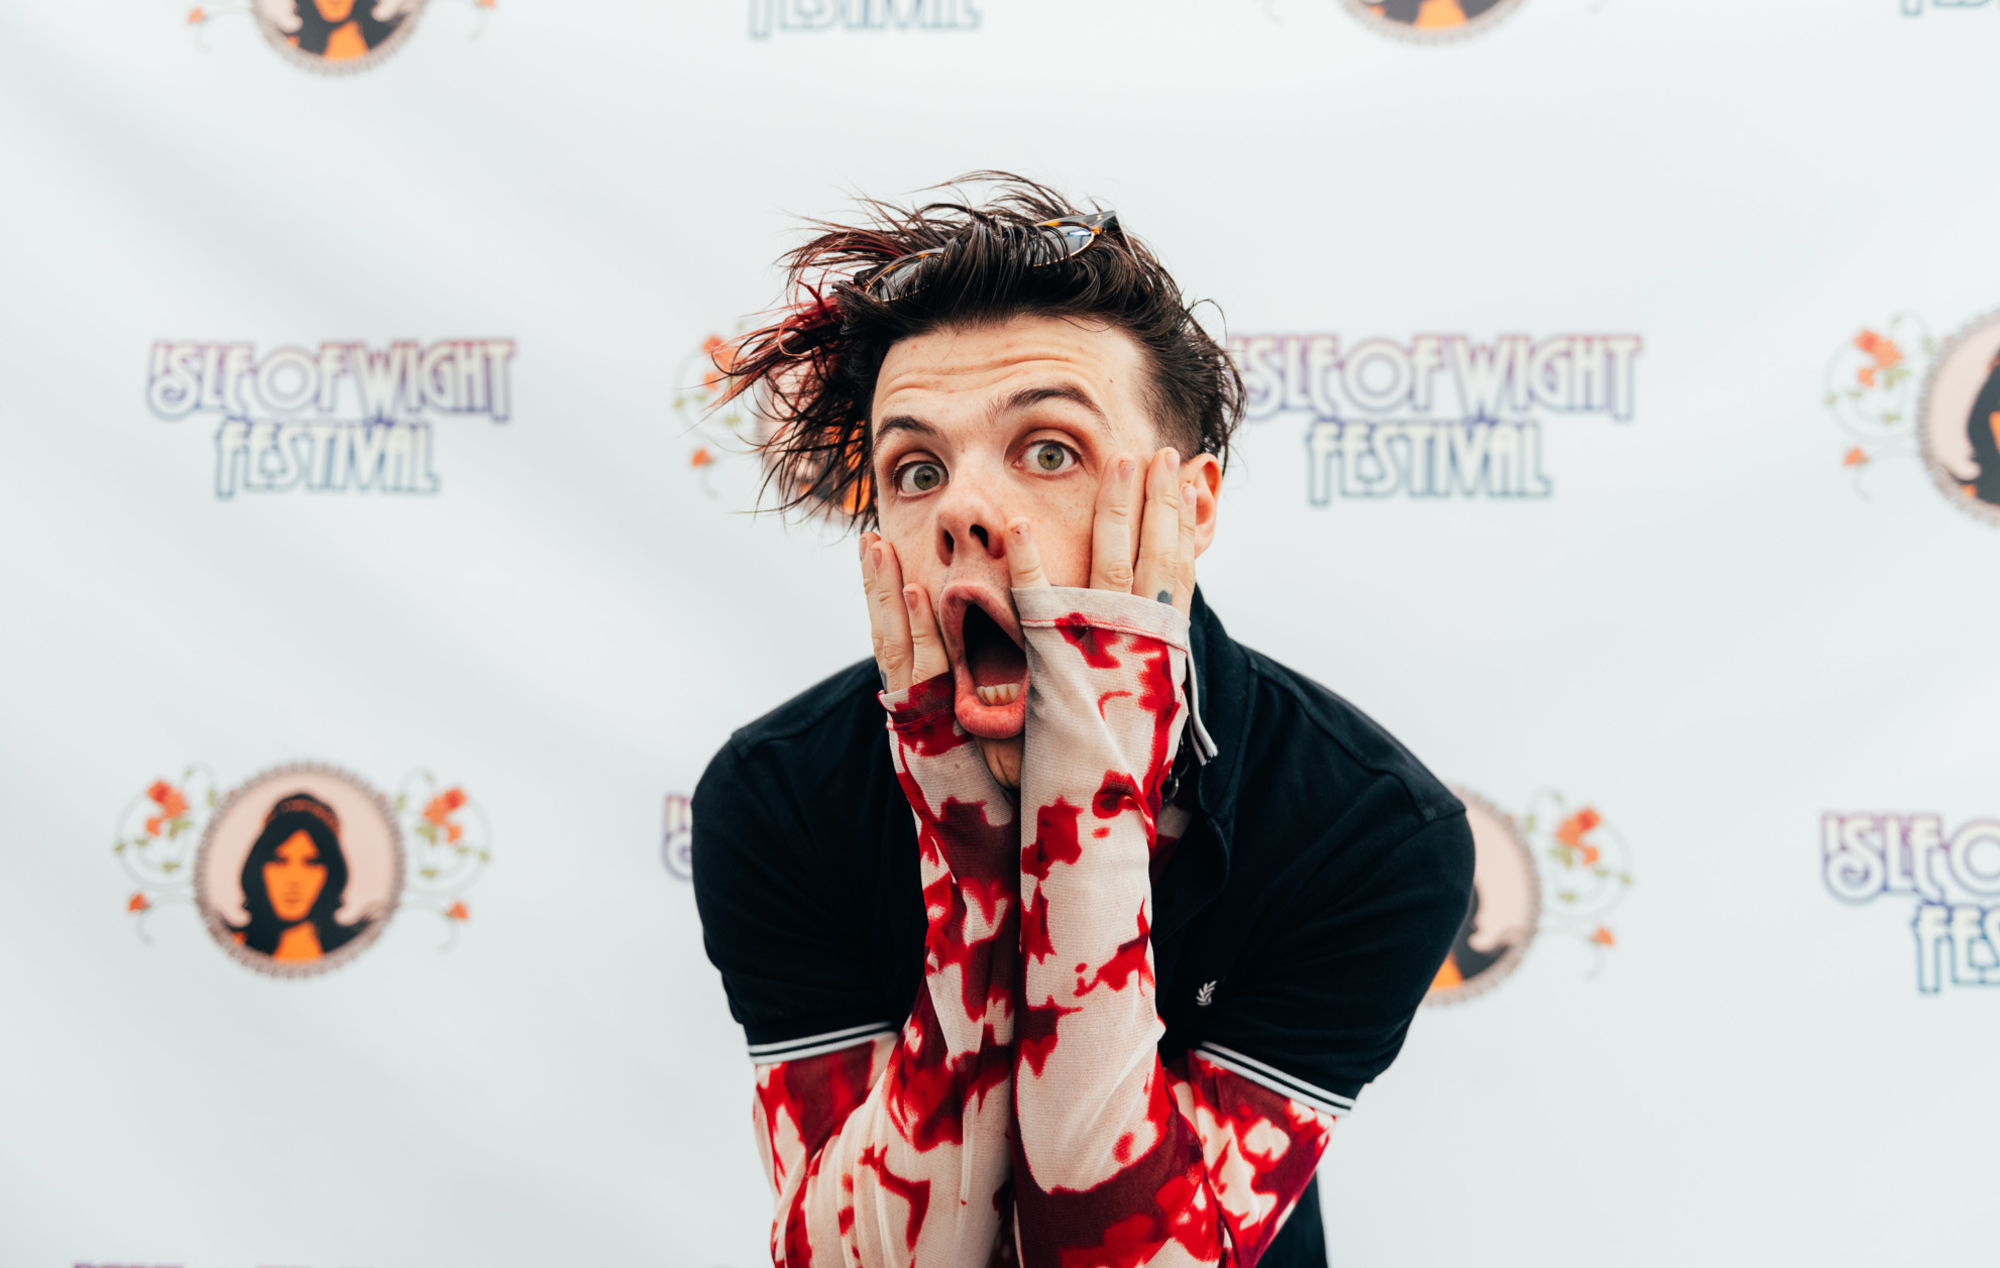 Yungblud at Isle of Wight Festival 2019